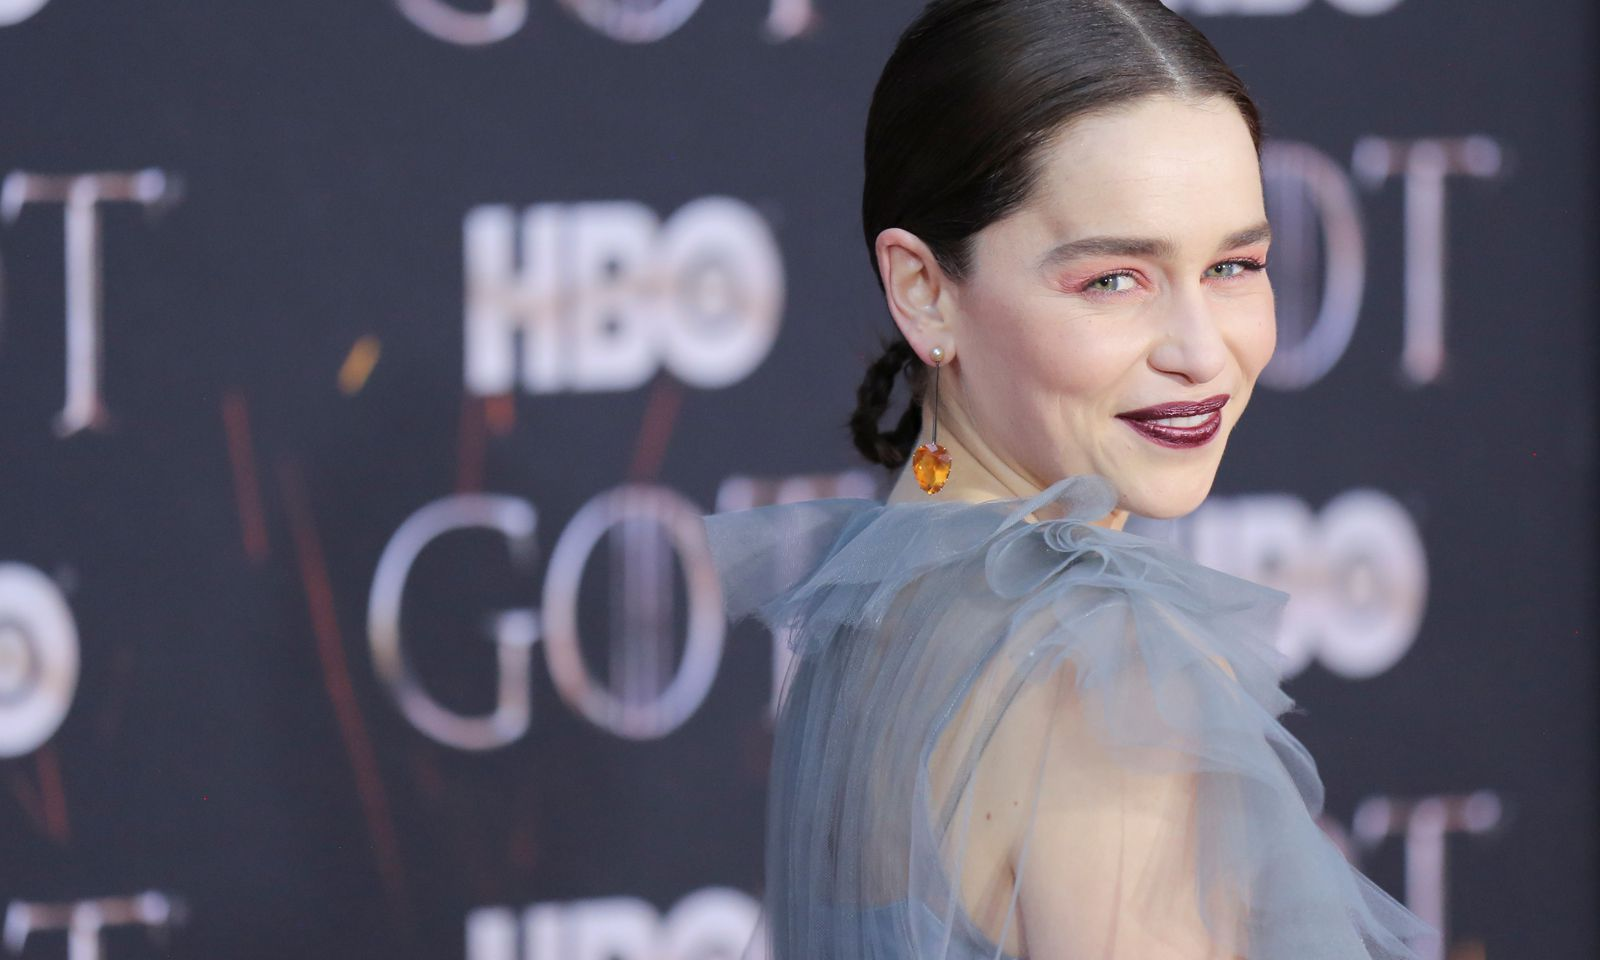 Emilia Clarke poses at the premiere of the final season of ´Game of Thrones´ at Radio City Music Hall in New York